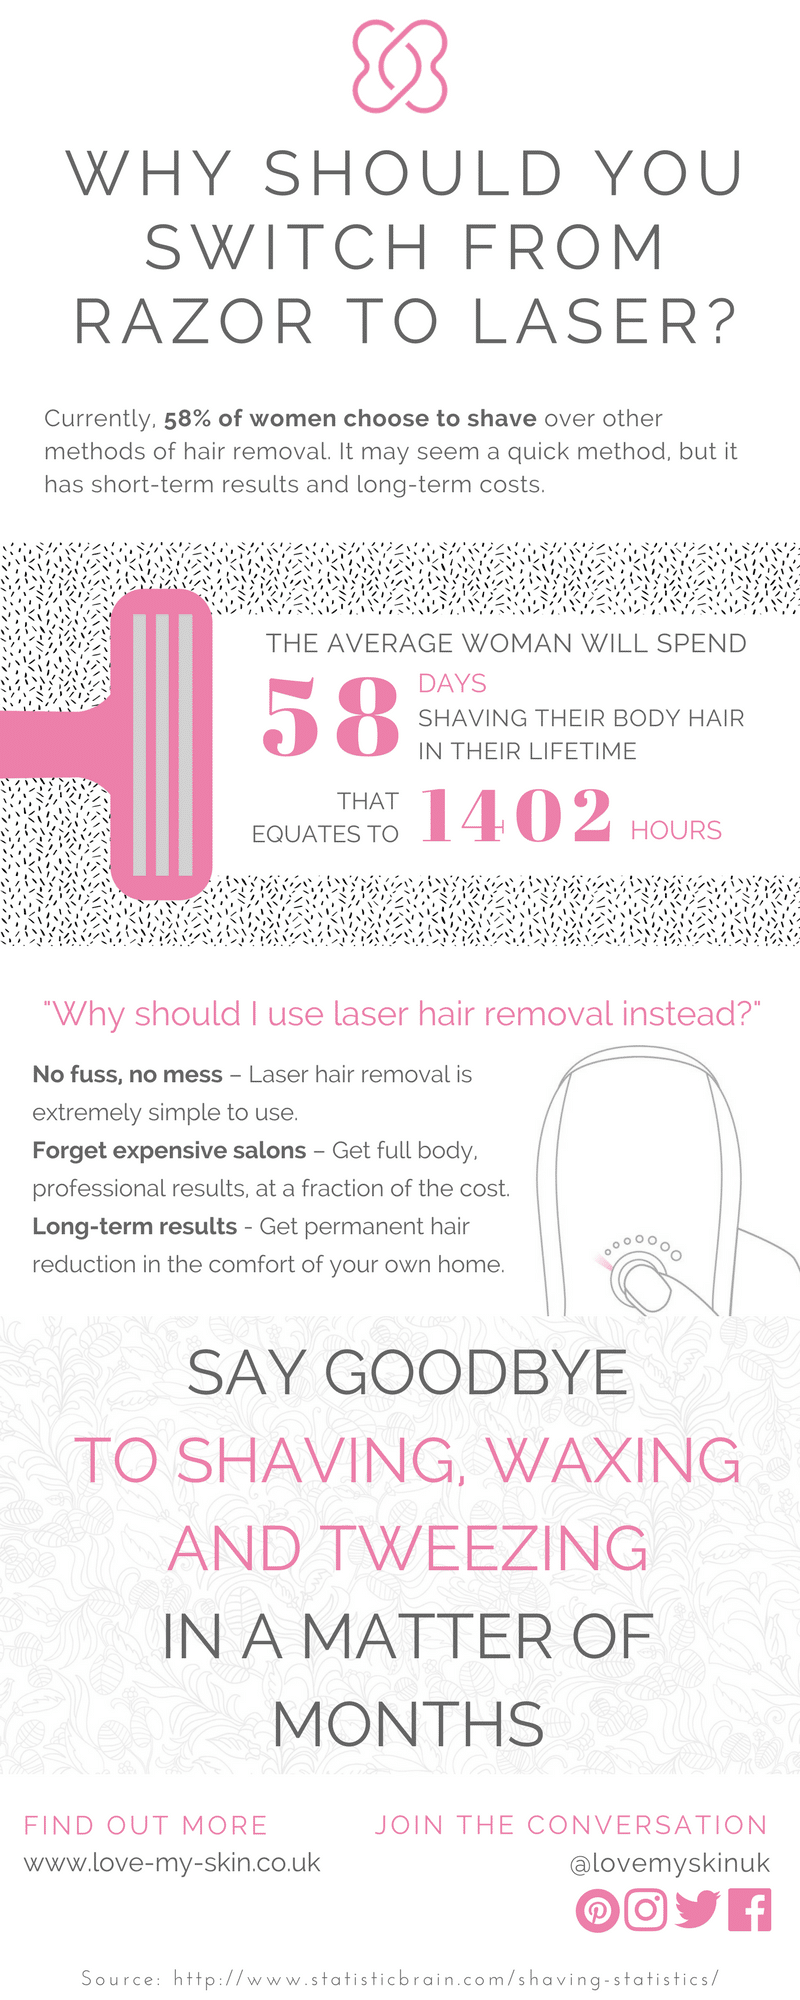 WHY SHOULD YOU SWITCH FROM RAZOR TO LASER